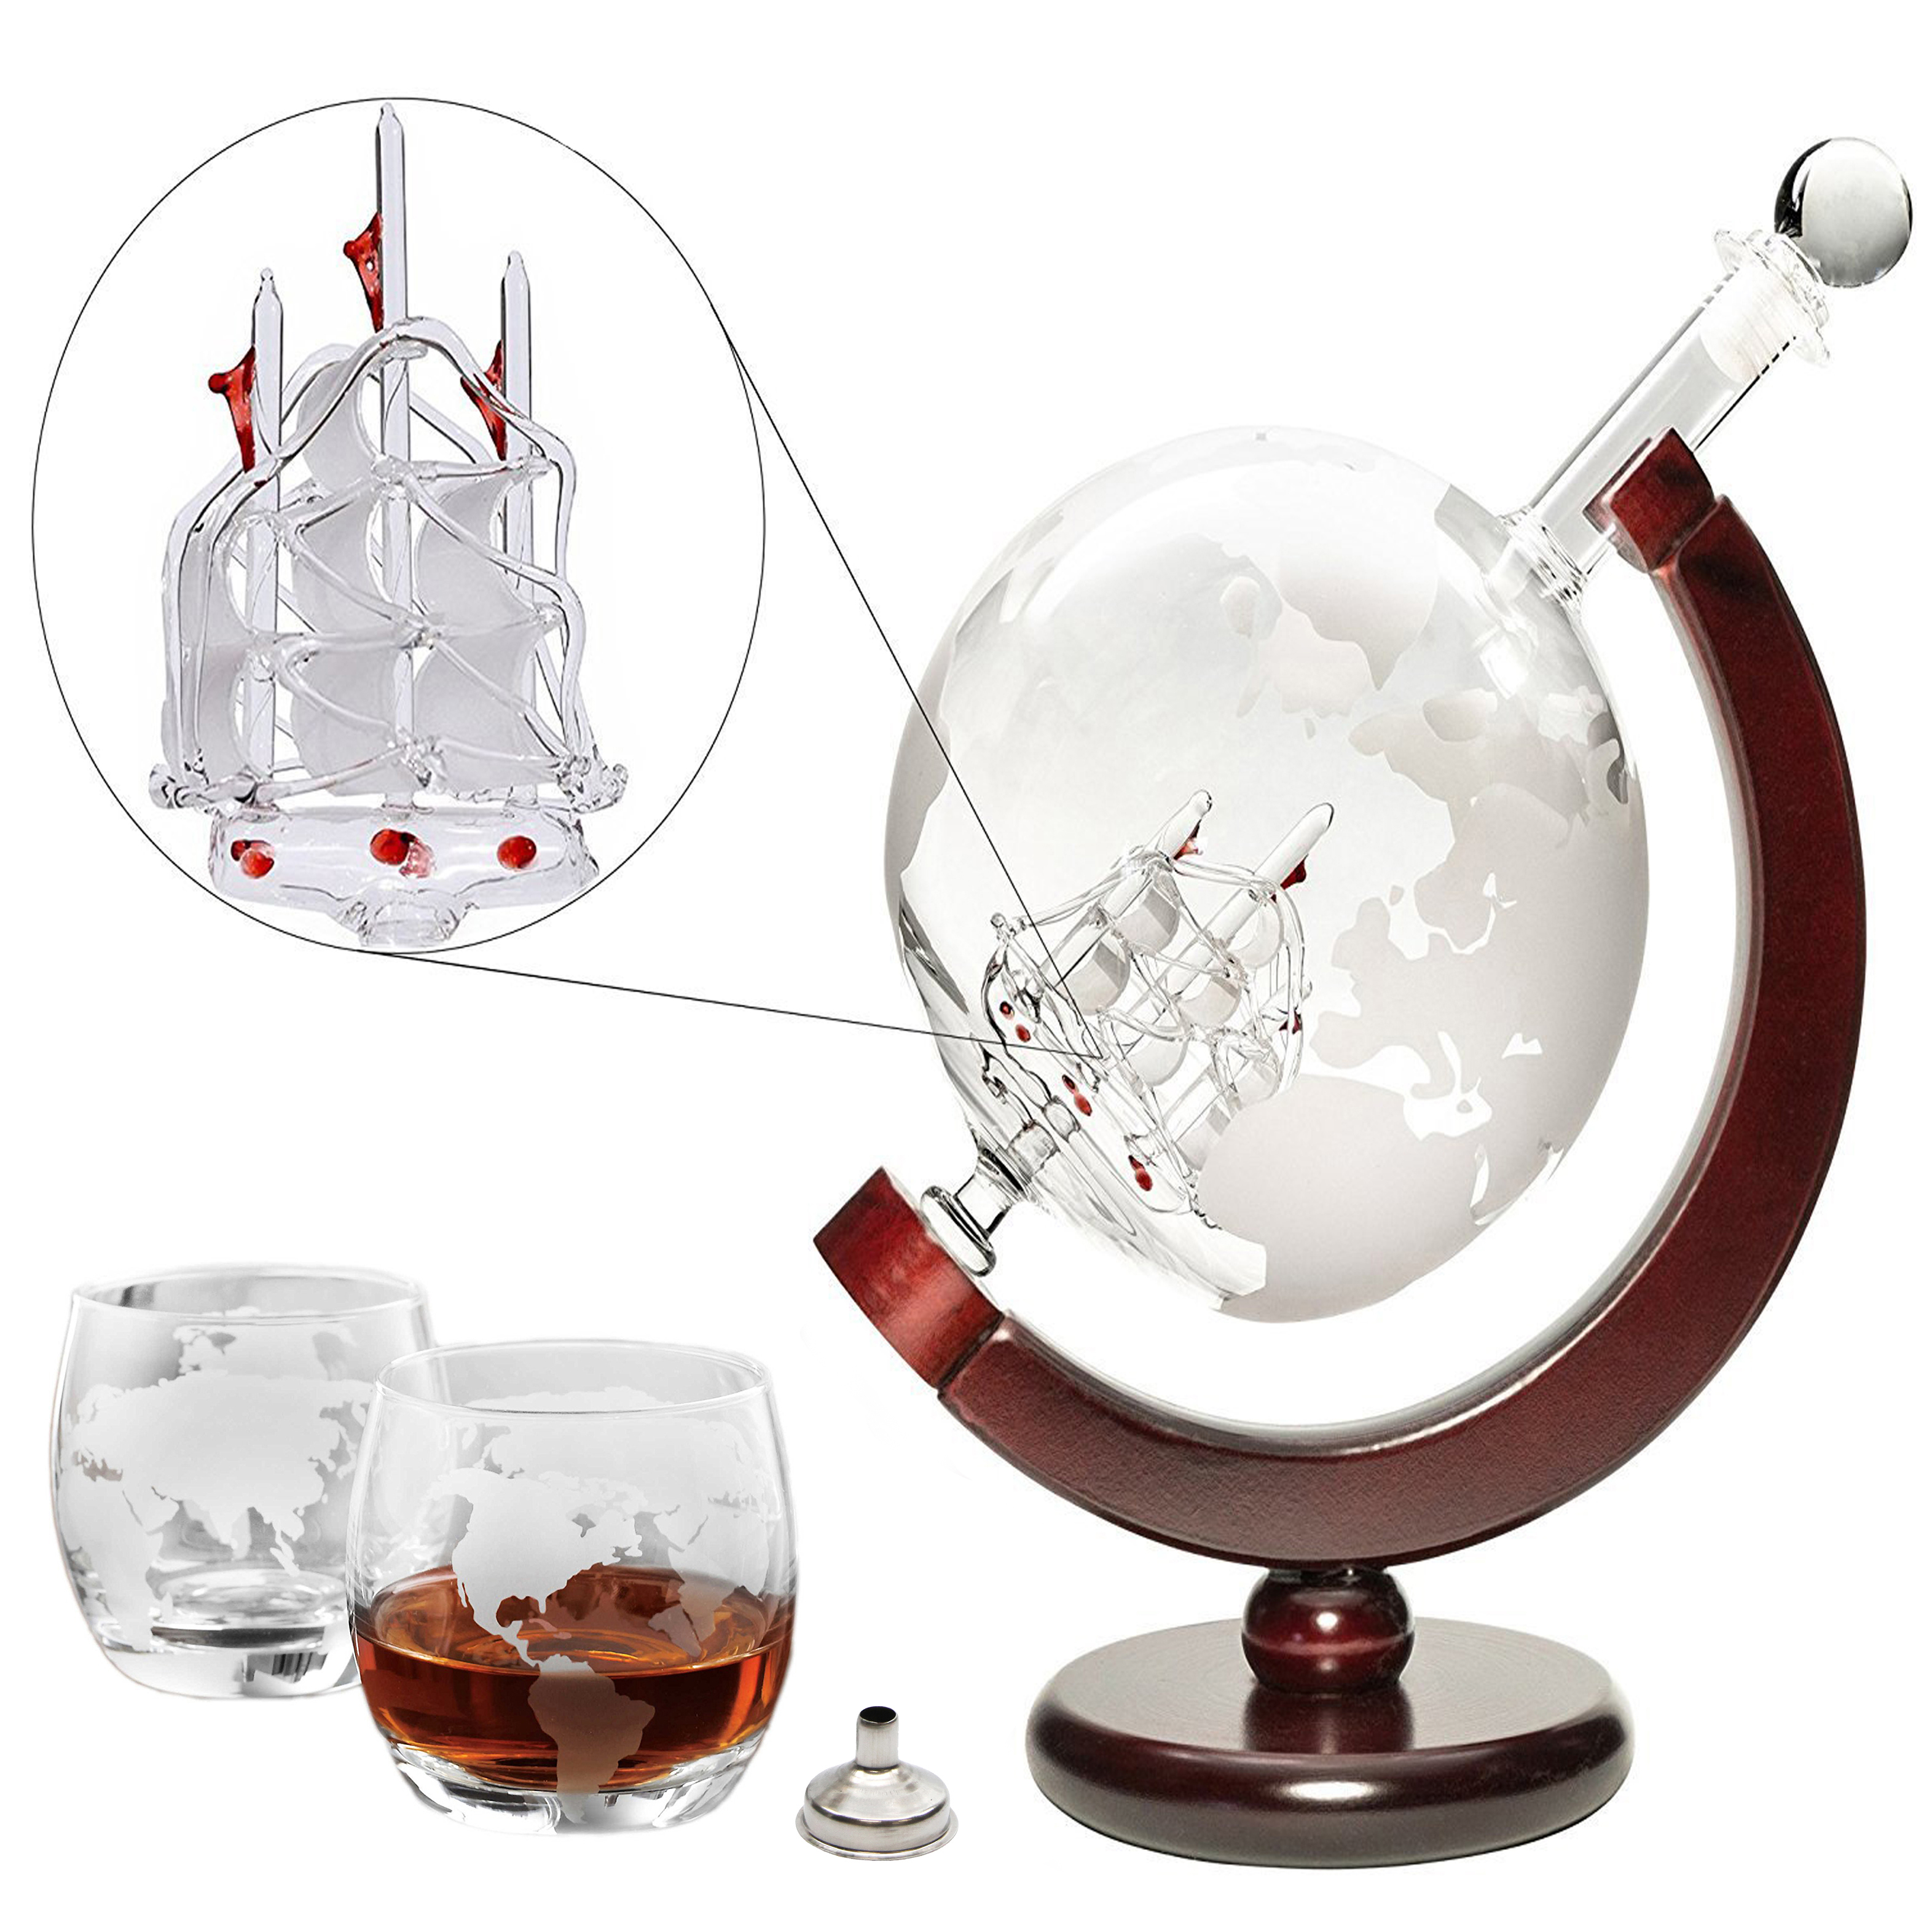 Denizli Spirits 35-oz Etched Globe Decanter and Glasses Set with Wooden Stand